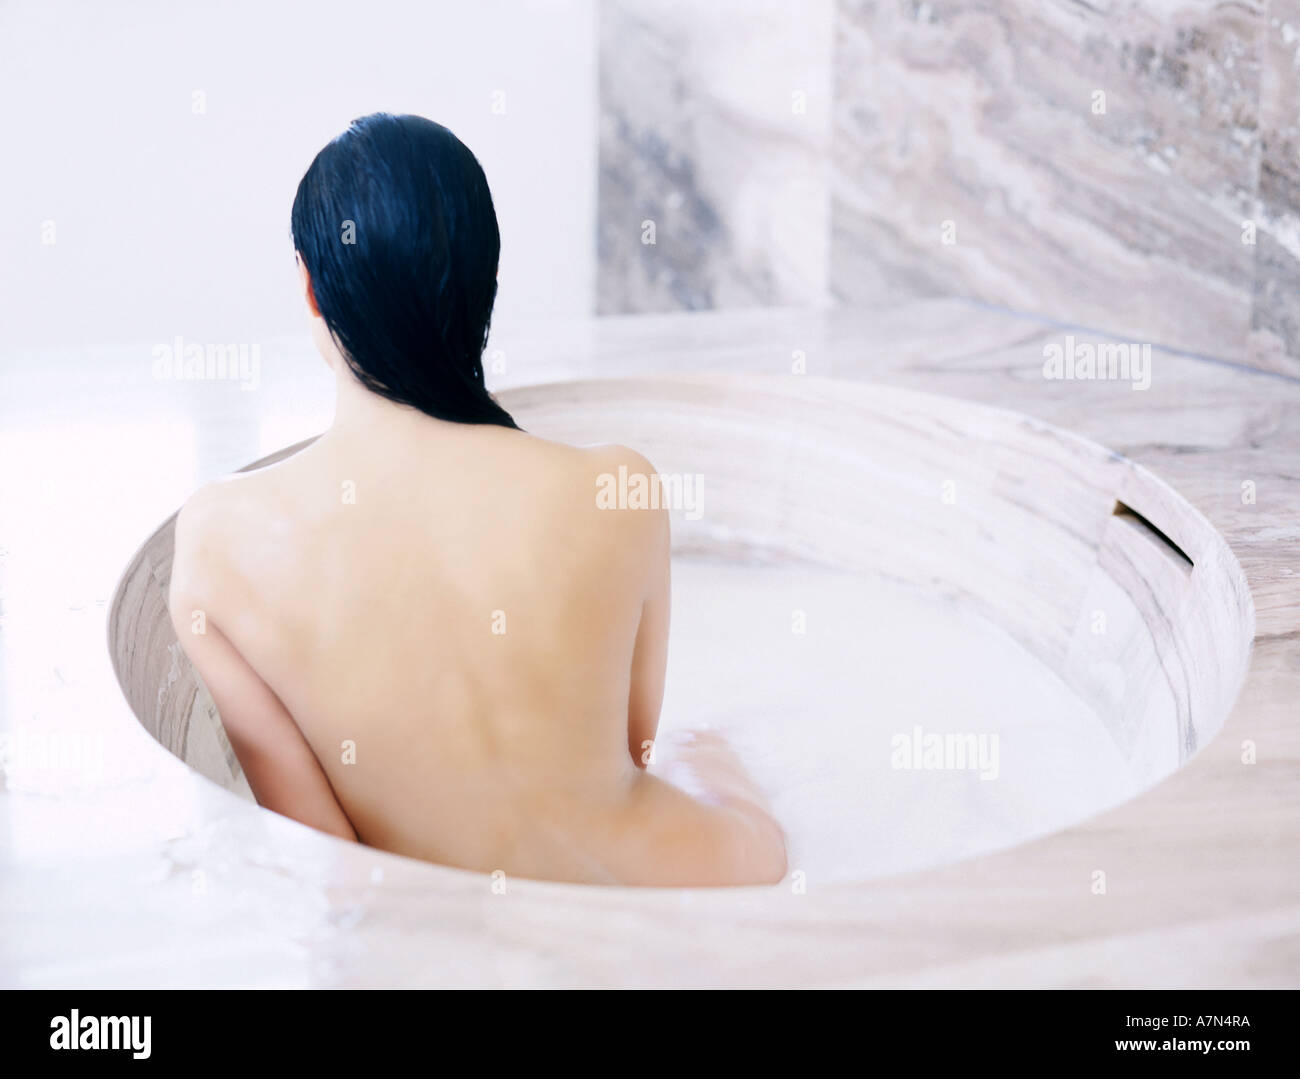 Something woman bathtub naked young turns out? Between